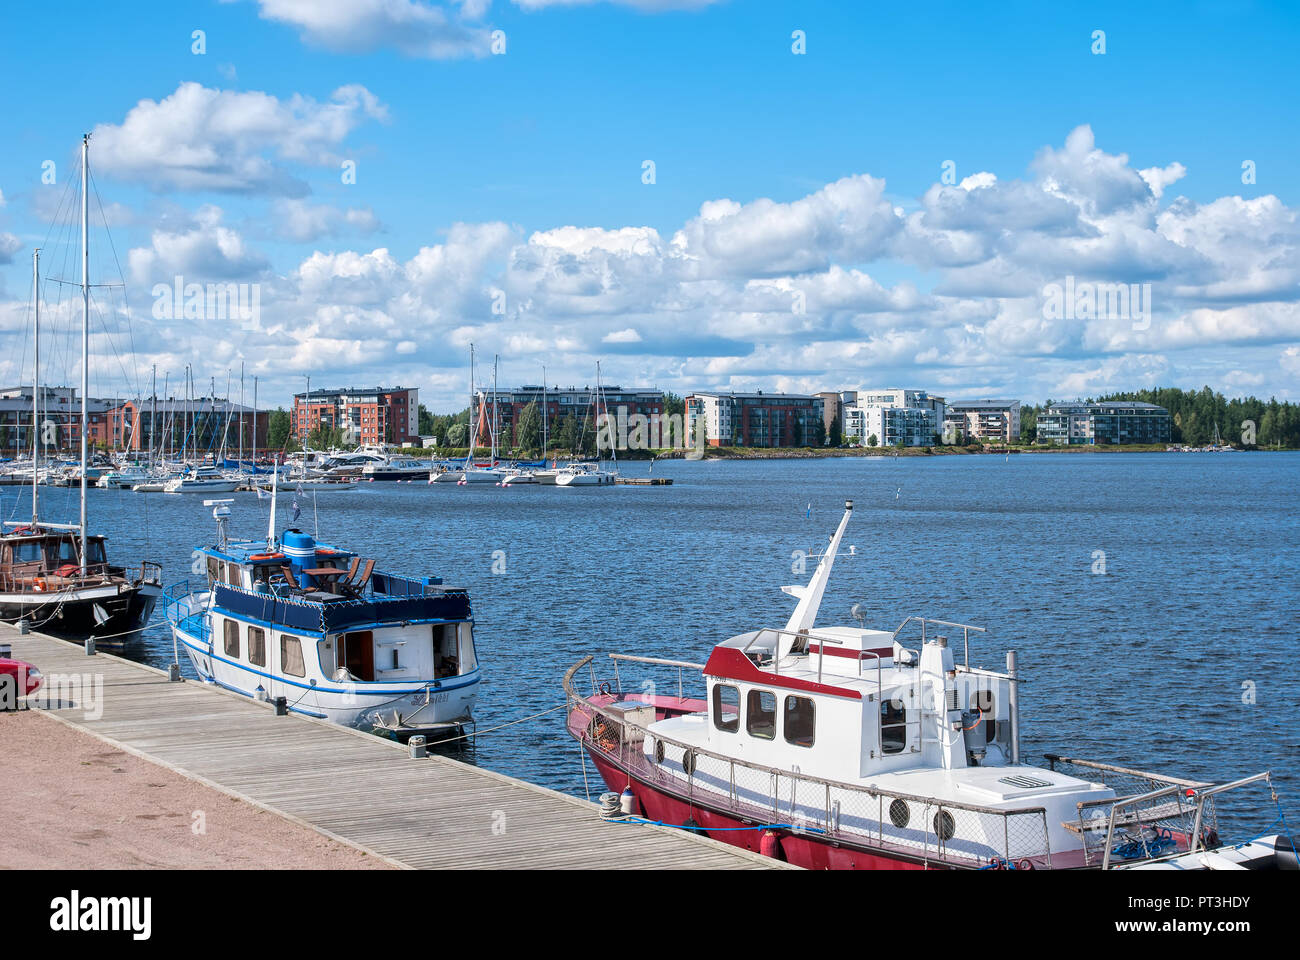 LAPPEENRANTA, FINLAND - AUGUST 8, 2016:  Pier with yachts and boats on Saimaa Lake. On the background are residential buildings on Rapasaari Island Stock Photo